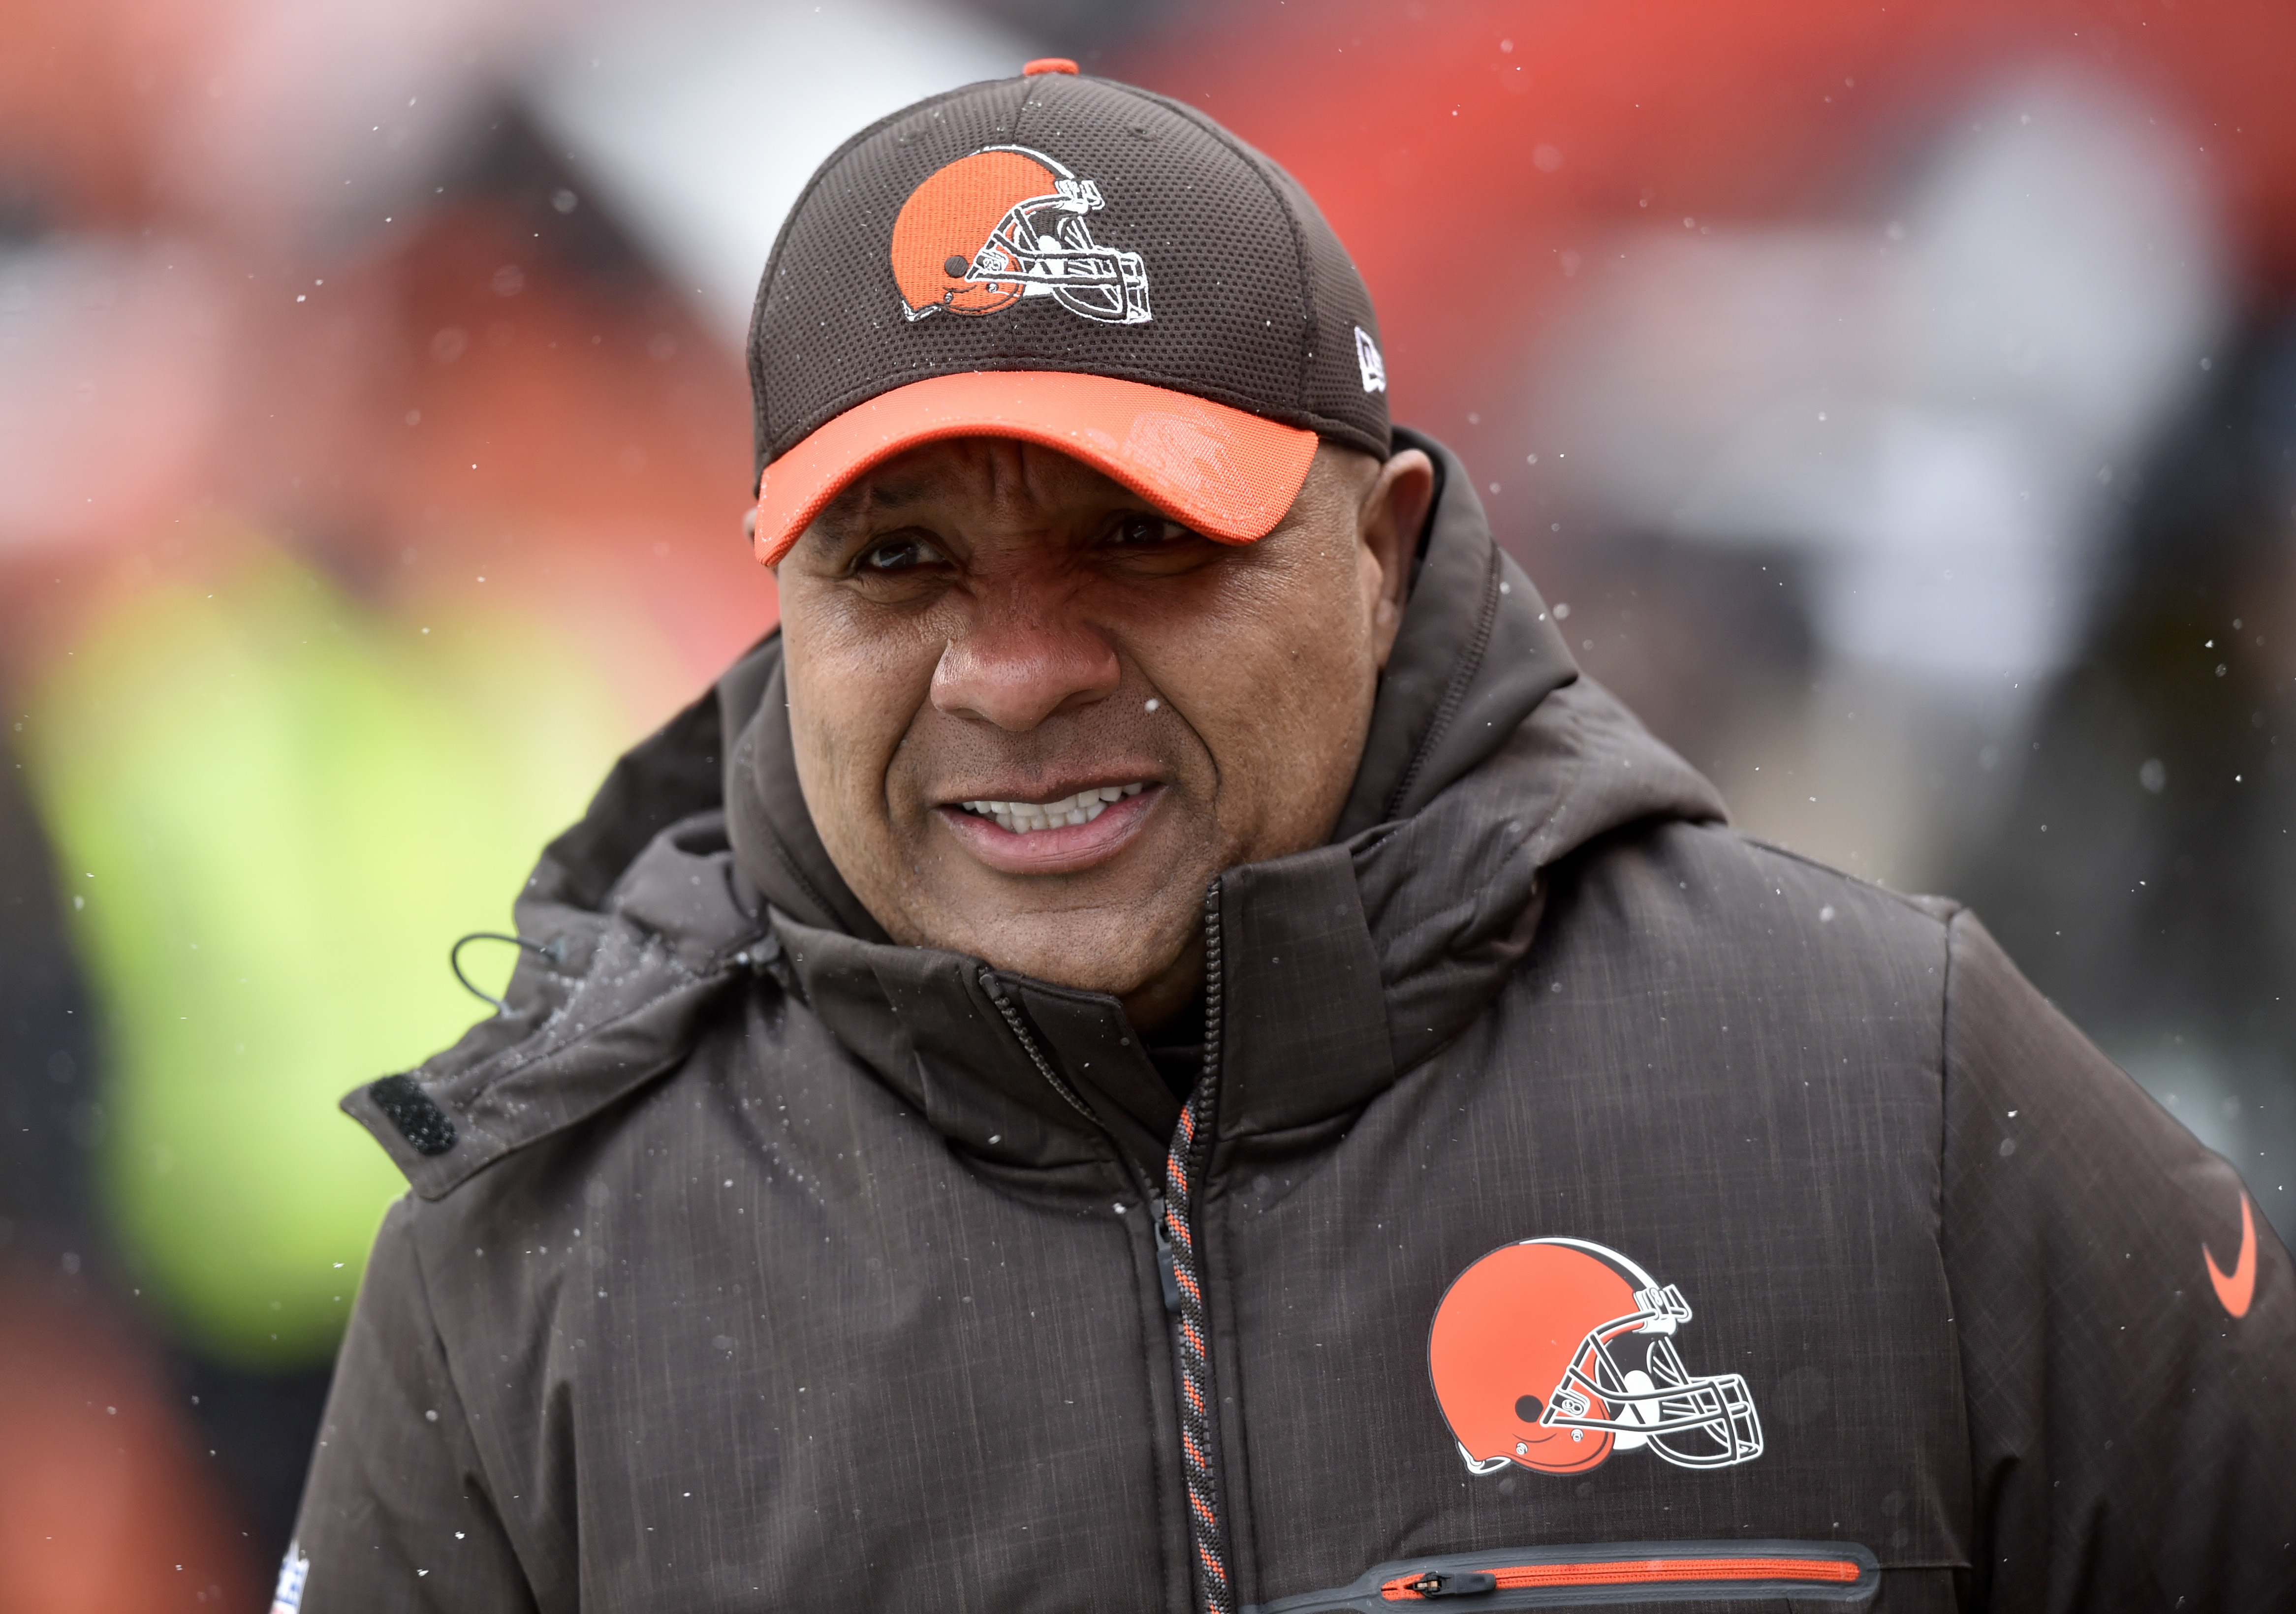 FILE - In this Sunday, Dec. 11, 2016 file photo, Cleveland Browns head coach Hue Jackson watches warm ups before an NFL football game against the Cincinnati Bengals in Cleveland. Browns coach Hue Jackson said hes not seen any quit in his players despite t